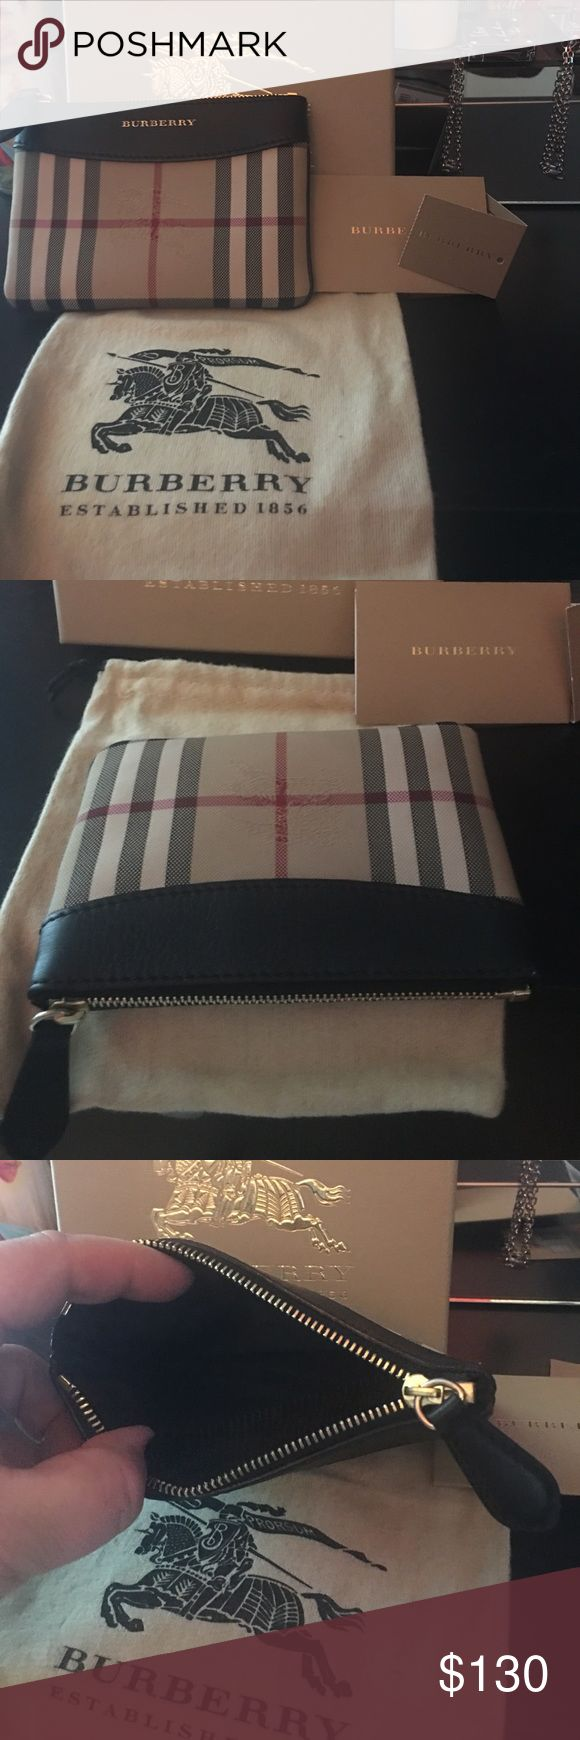 Authentic Burberry coin purse Authentic Burberry coin purse comes with everything shown in picture.  Still in amazing shape Burberry Bags Wallets